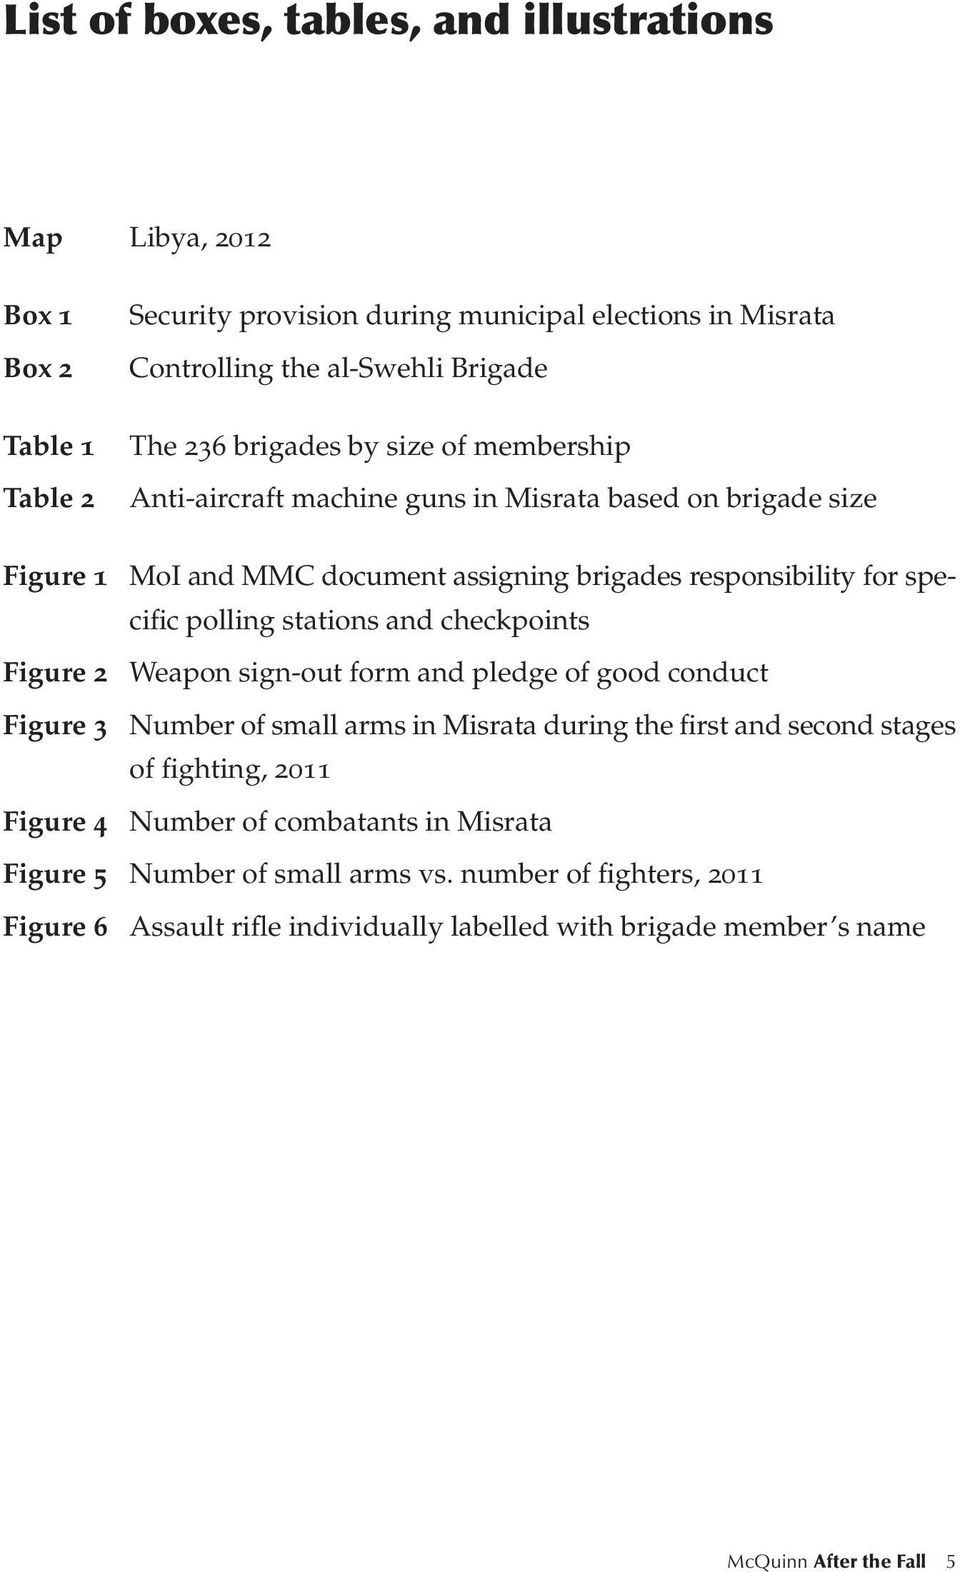 stations and checkpoints Figure 2 Weapon sign-out form and pledge of good conduct Figure 3 Number of small arms in Misrata during the first and second stages of fighting, 2011 Figure